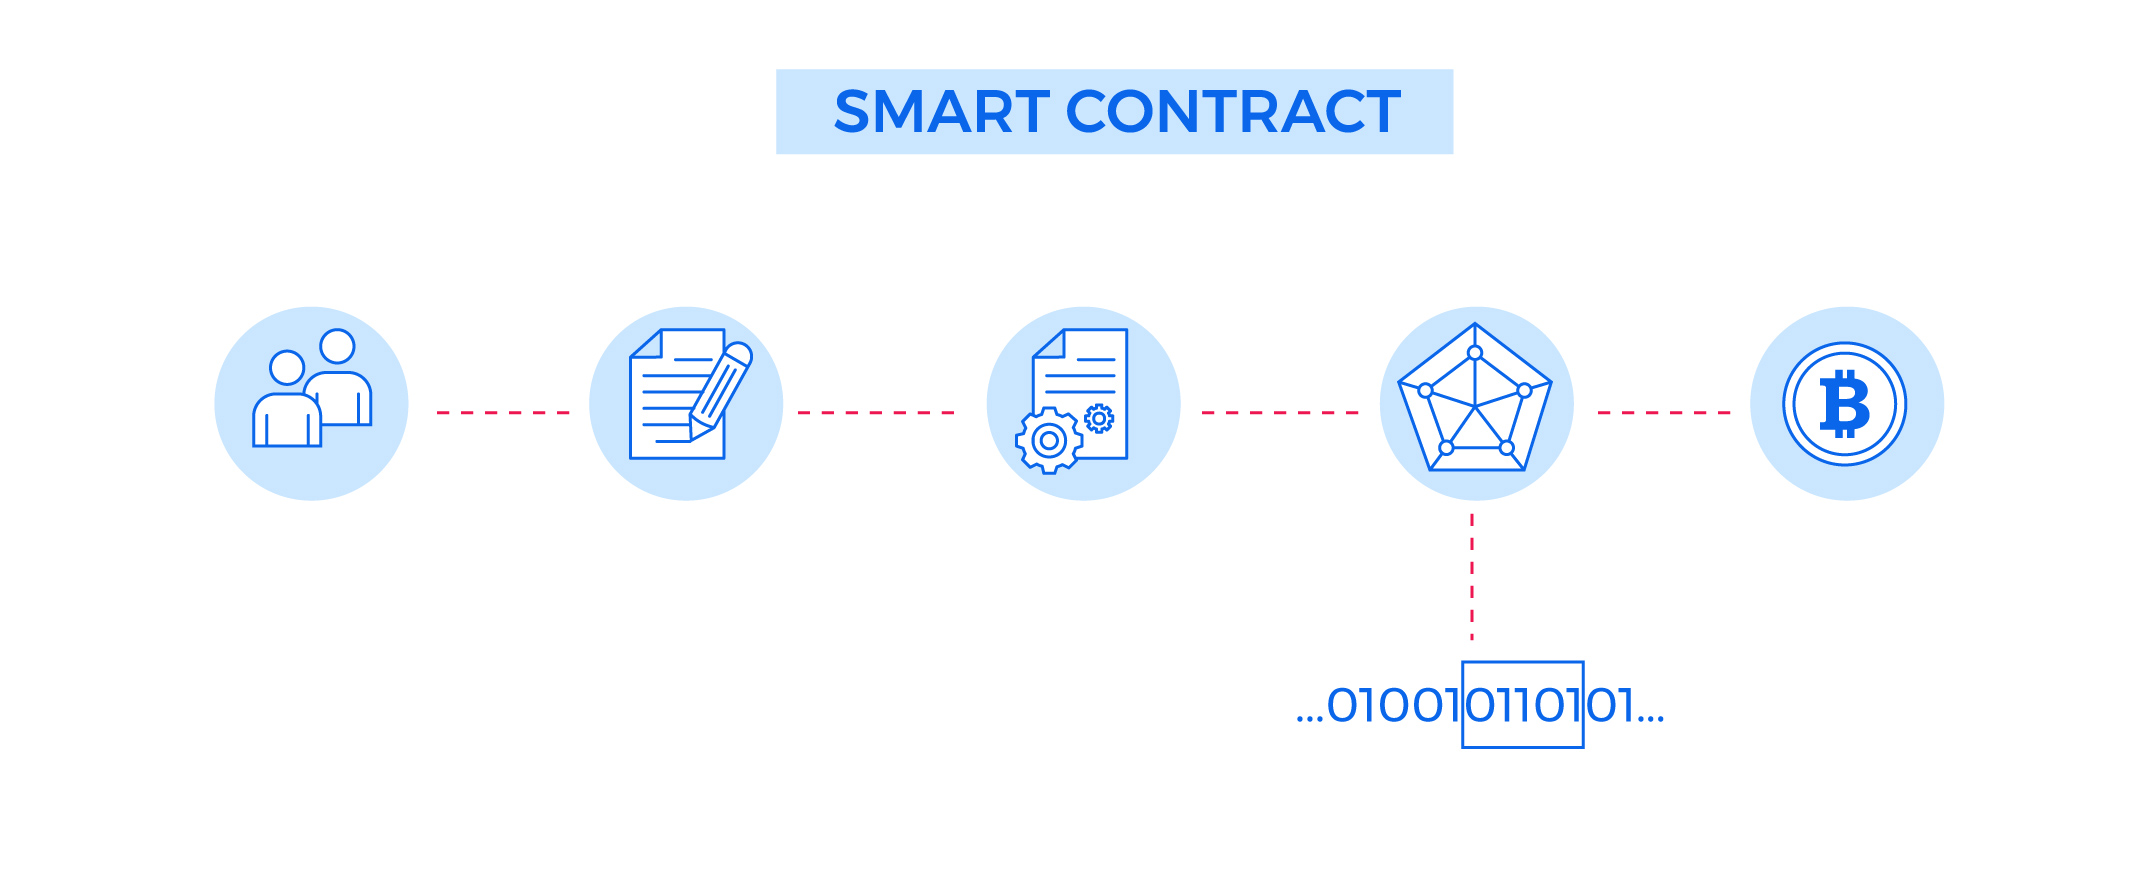 What are Some Smart Contract Applications?